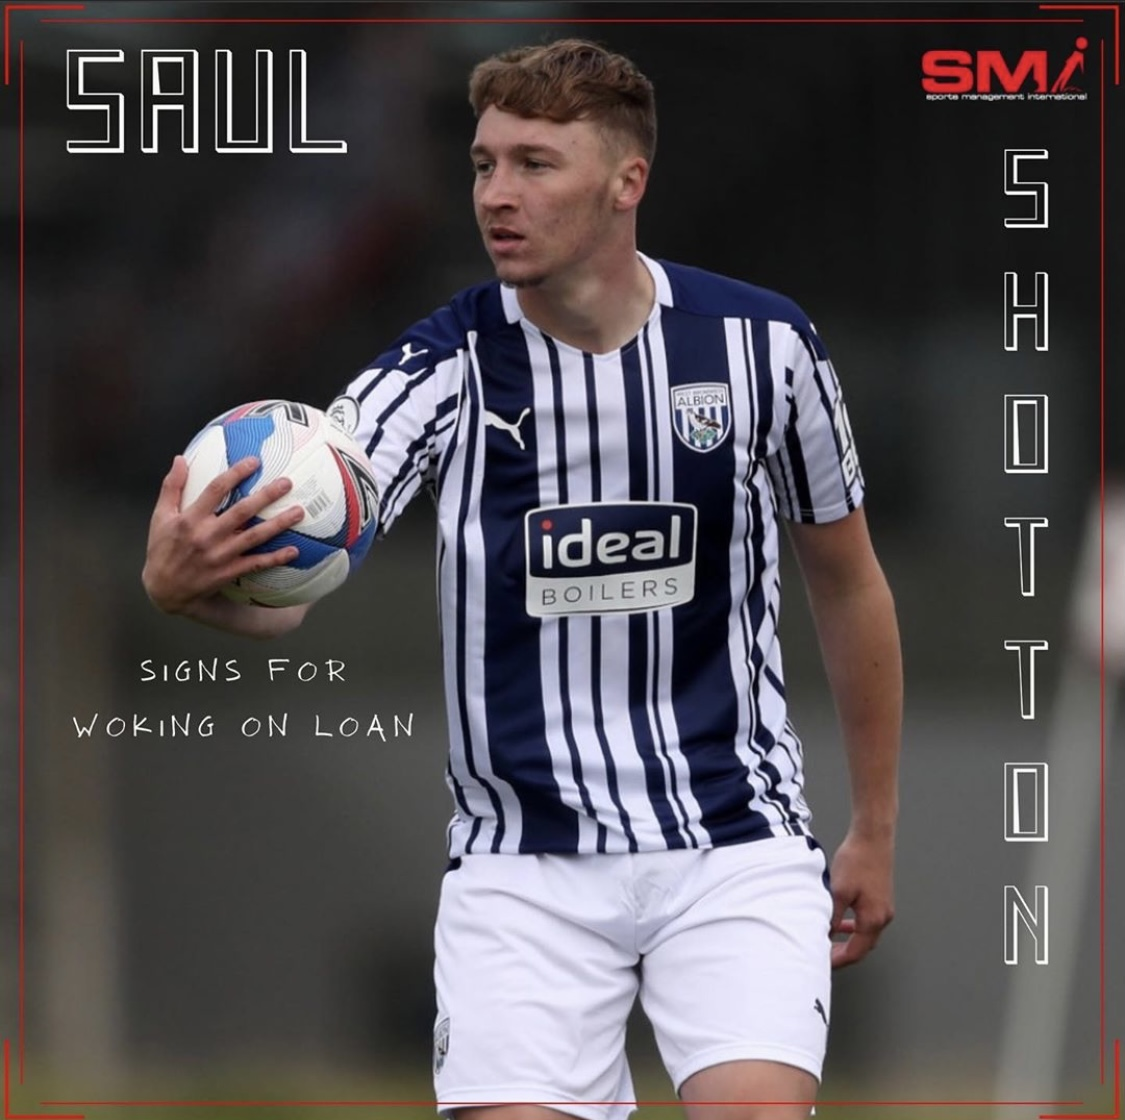 Saul Shotton joins Woking on loan